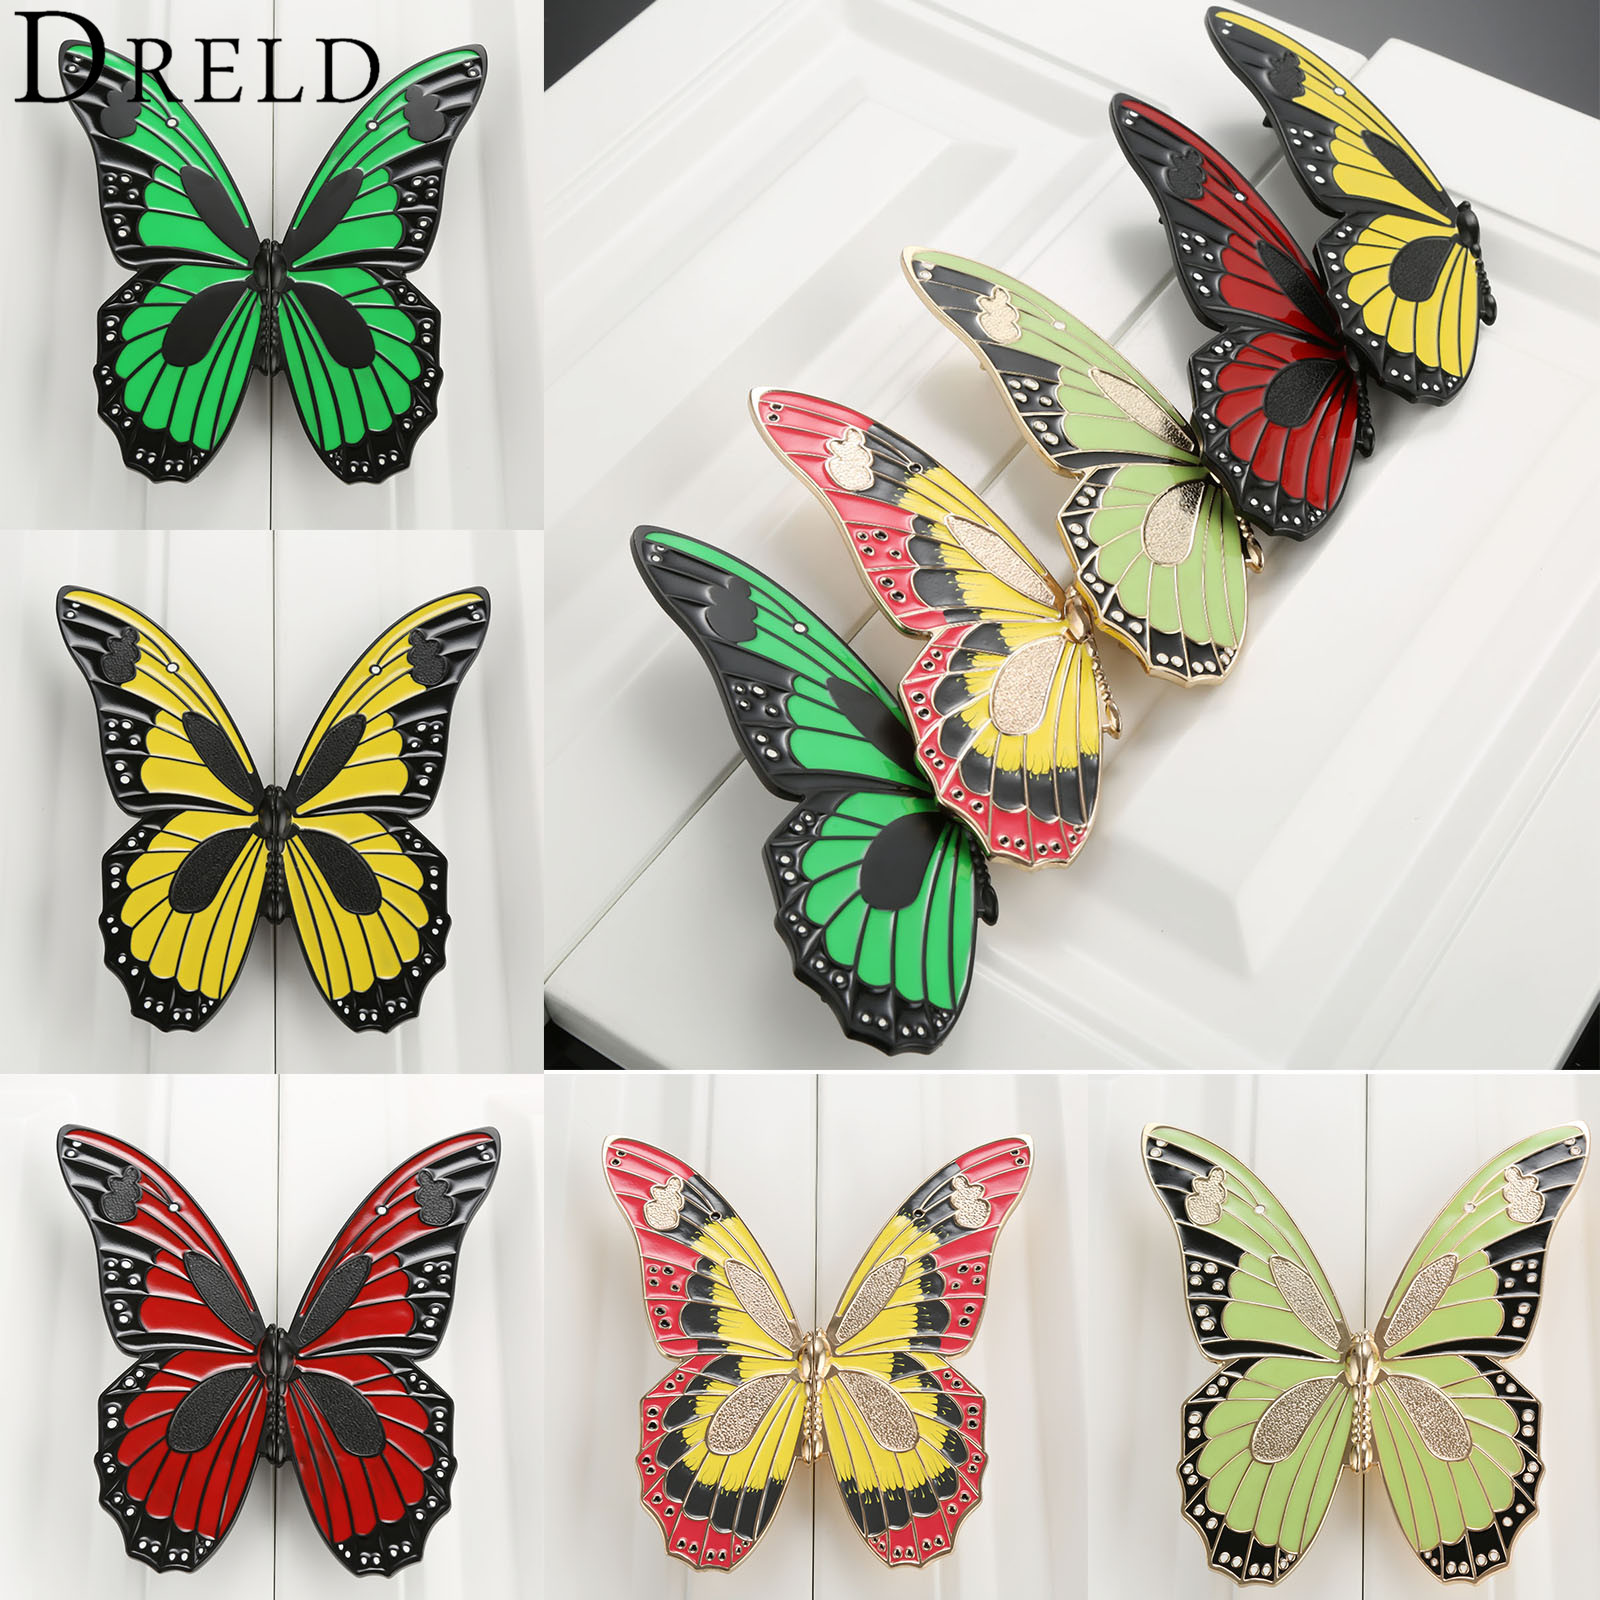 DRELD 1Pc Butterfly Furniture Handles Cabinet Knobs and Handles Zinc Alloy Door Knob Cupboard Dresser Drawer Kitchen Pull Handle 1pc furniture handles wardrobe door pull drawer handle kitchen cupboard handle cabinet knobs and handles decorative dolphin knob